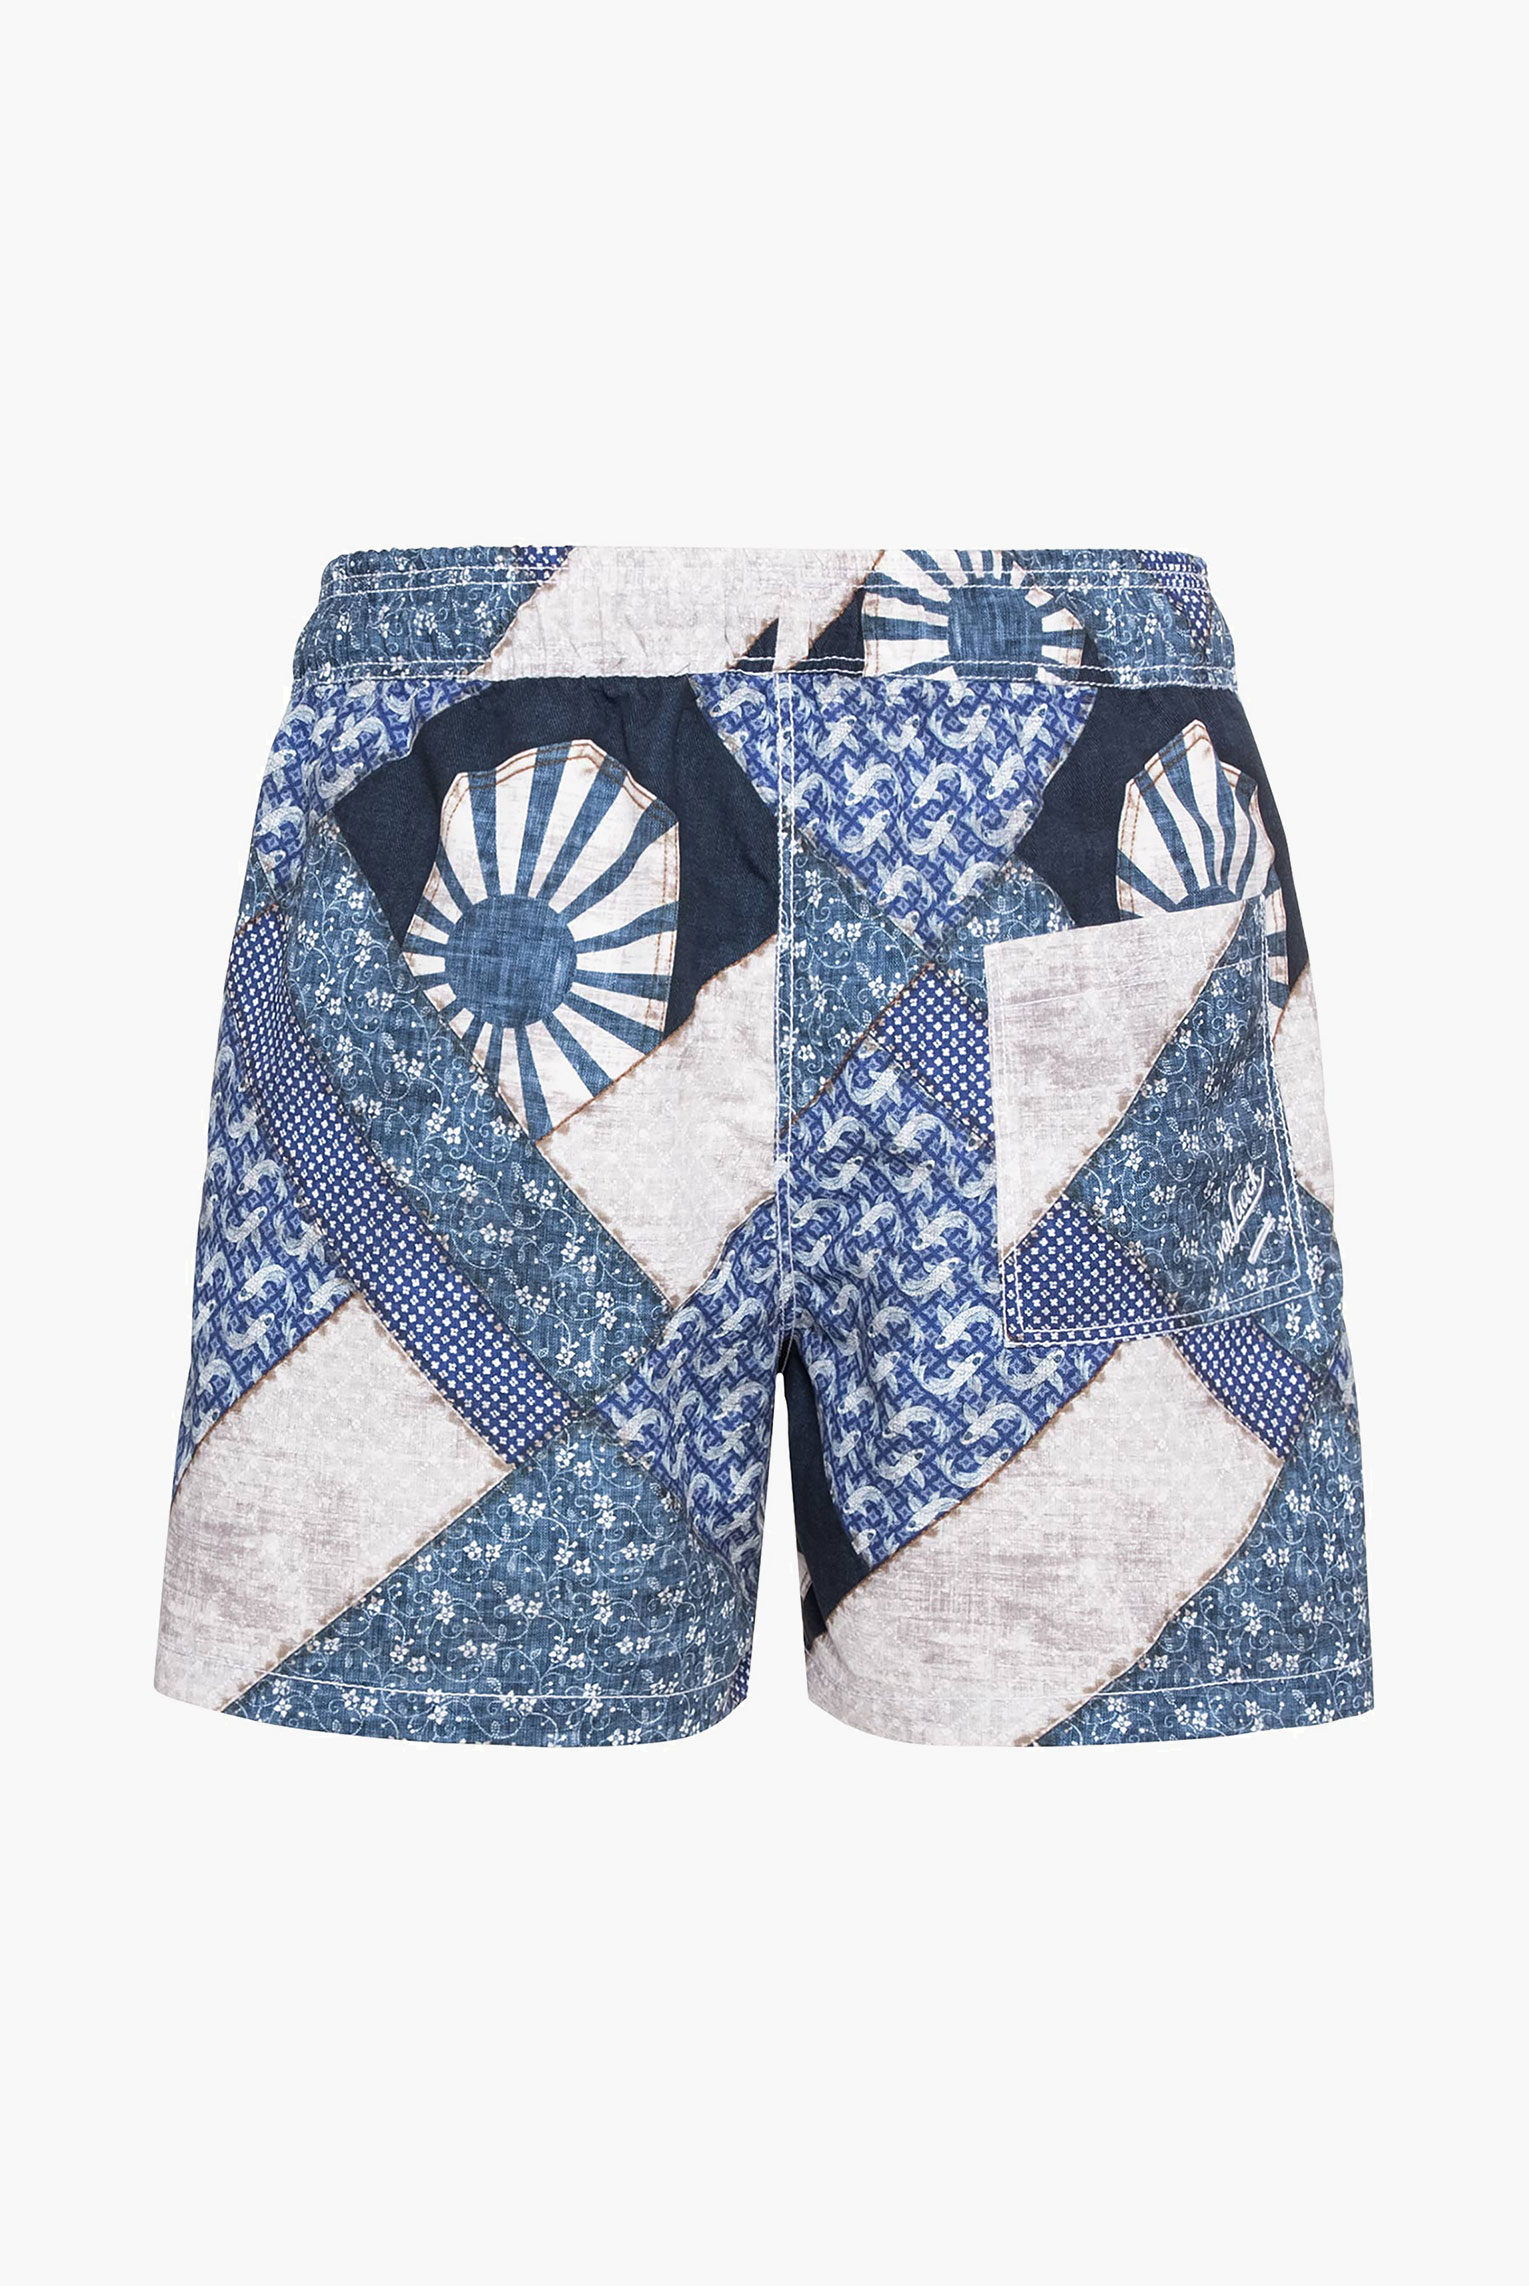 Sale+swim shorts with exclusive blue patchwork print+91.1179..171718.770.48